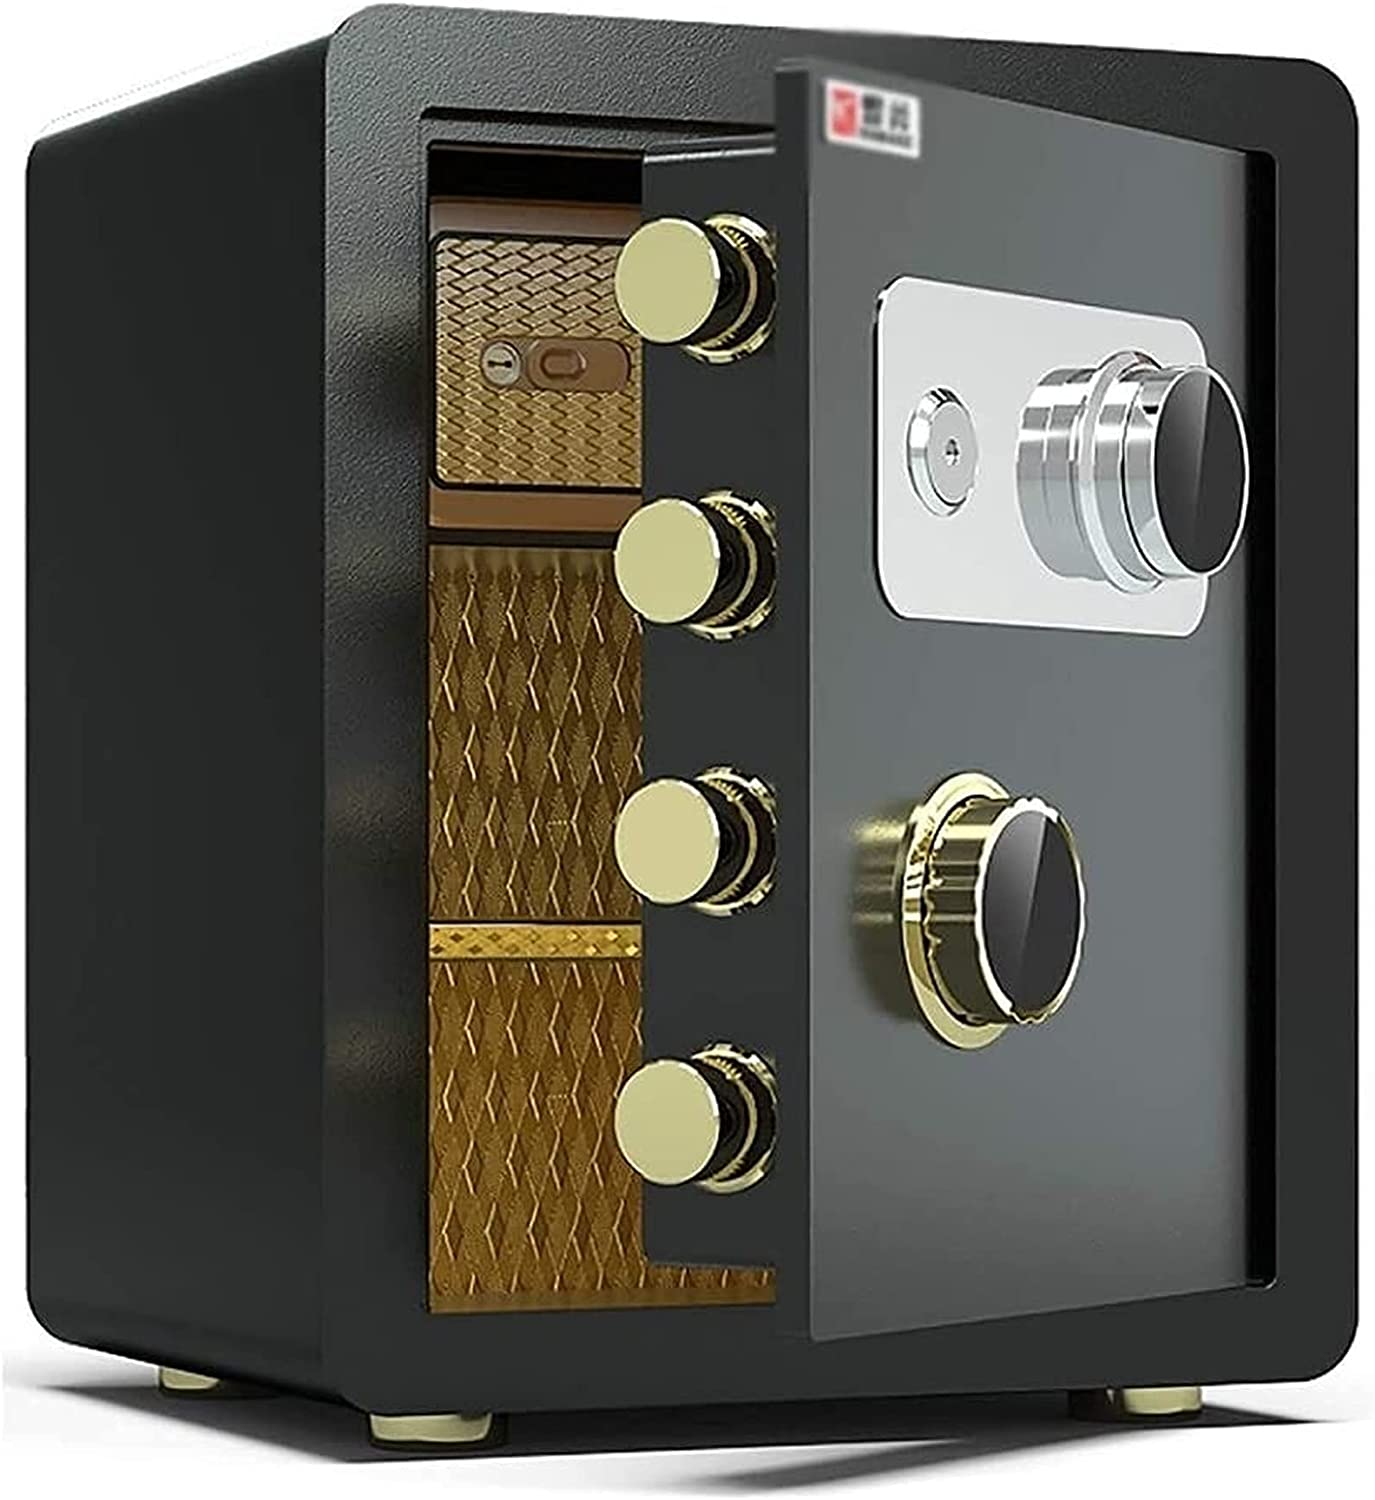 PARTAS Cabinet Safes Home with Price reduction Key Safe Mechanical A Outlet SALE